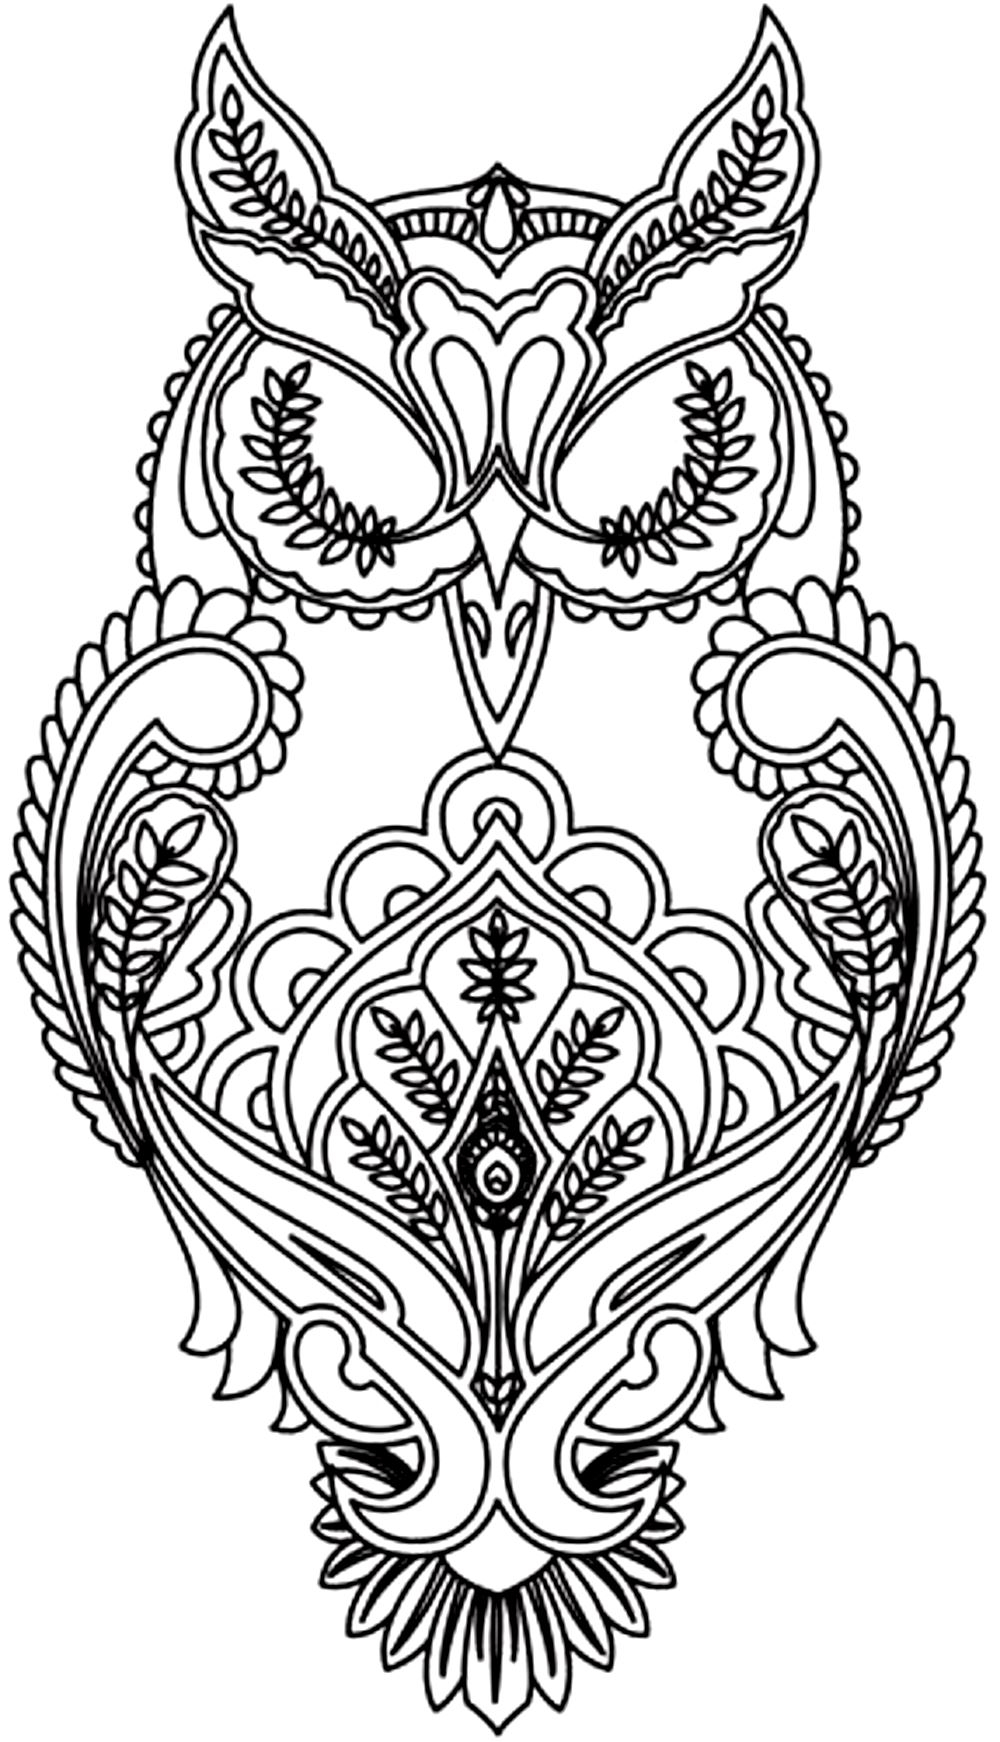 Advanced Animal Coloring Pages  Printable 15k - To print for your project